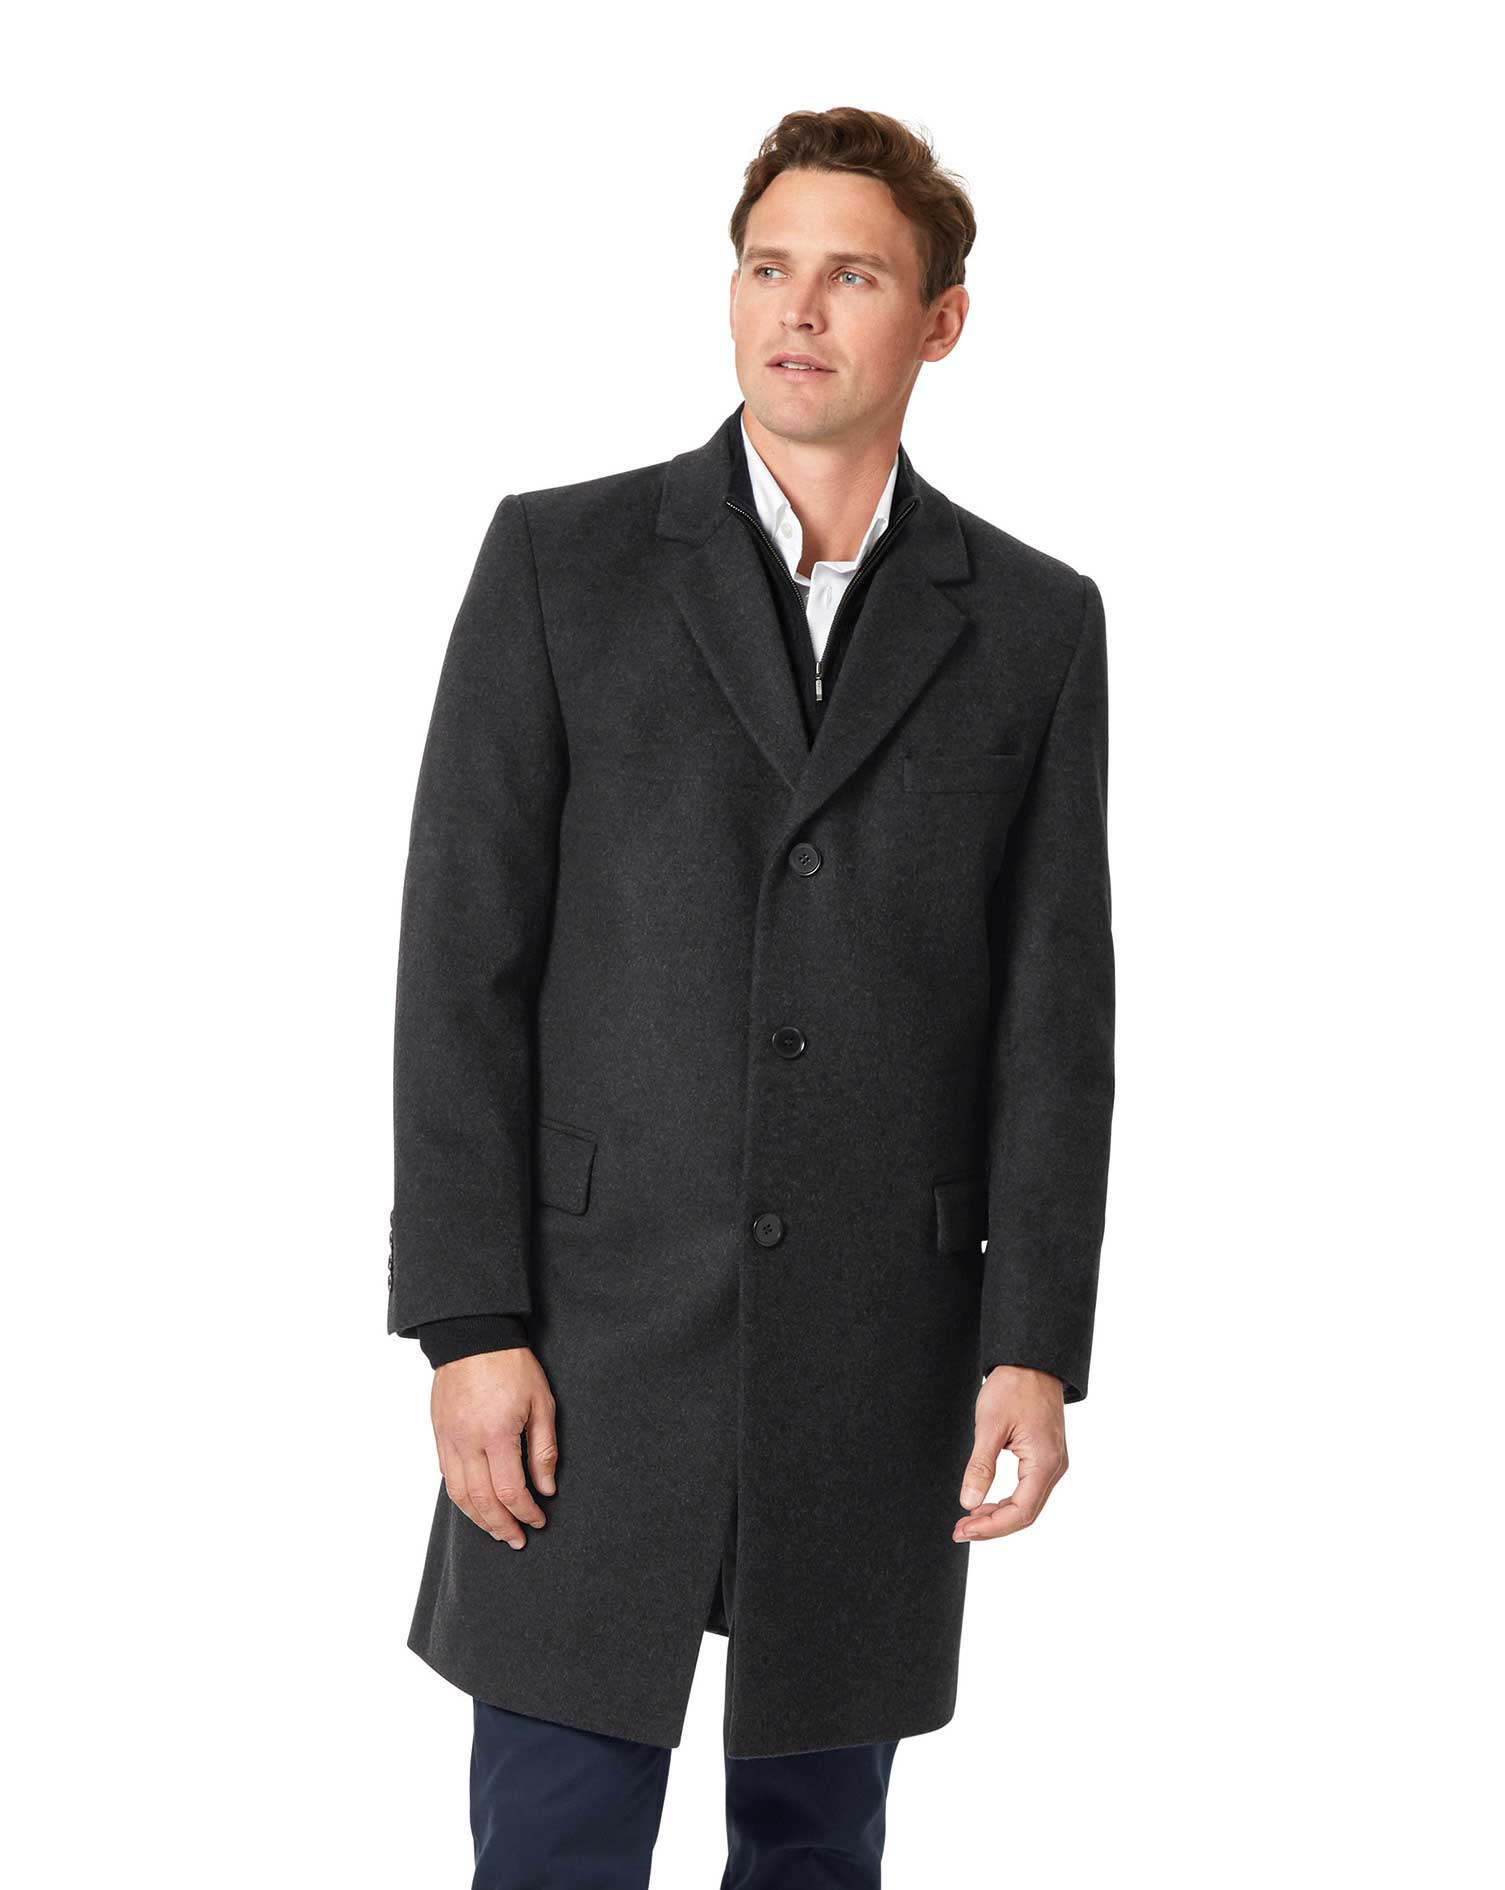 Grey Wool and Cashmere Overcoat Size 46 Regular by Charles Tyrwhitt